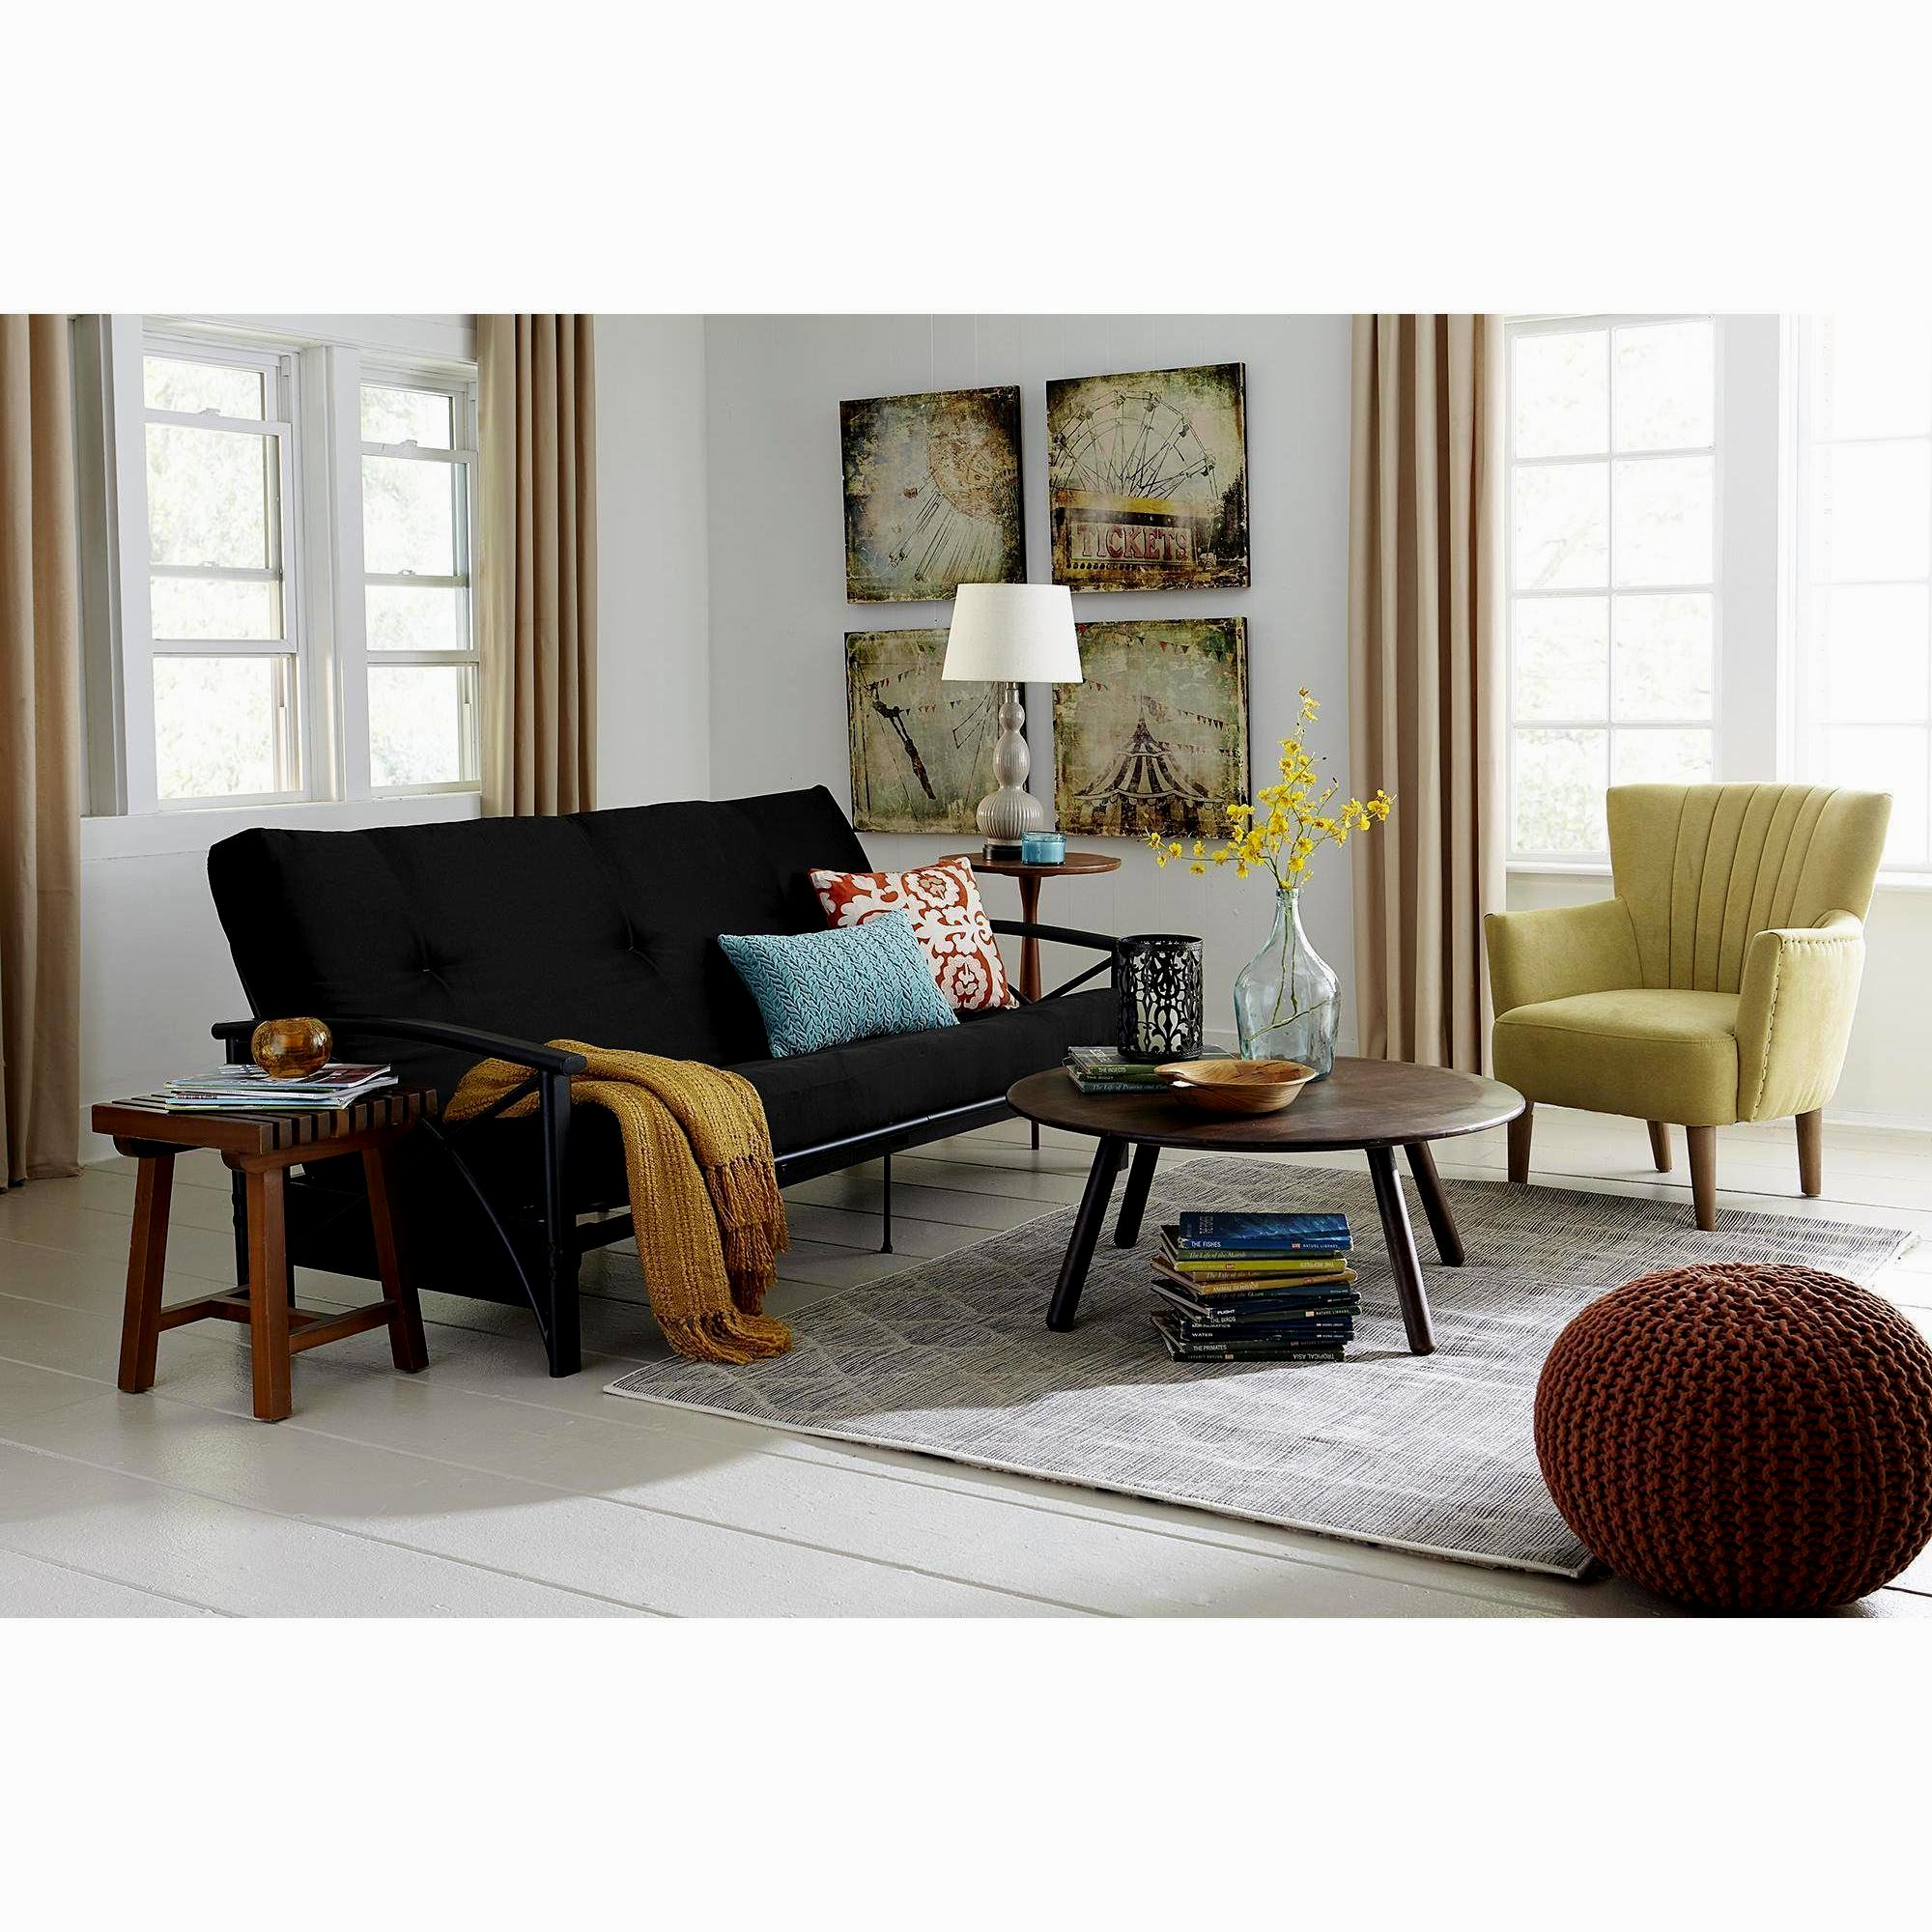 amazing most comfortable sofa collection-Luxury Most Comfortable sofa Plan